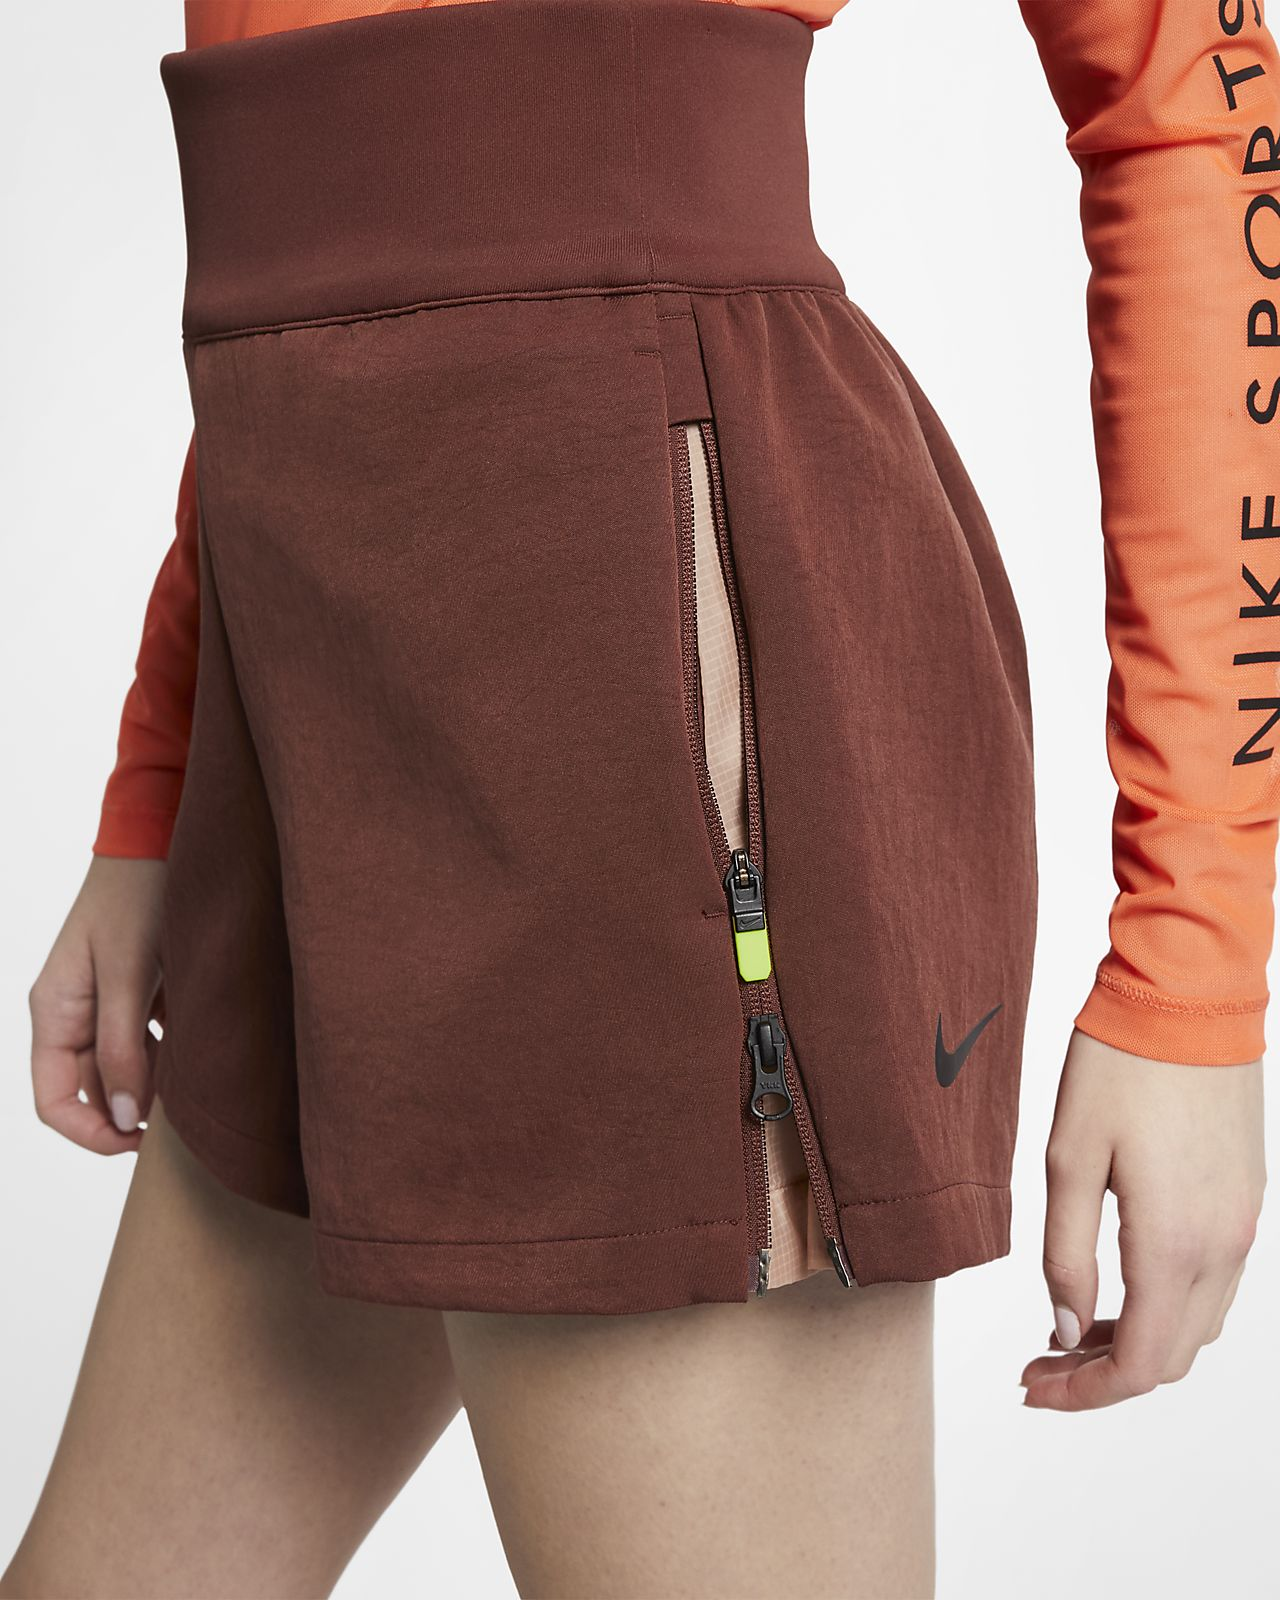 Nike Sportswear Tech Pack Women's Woven Shorts